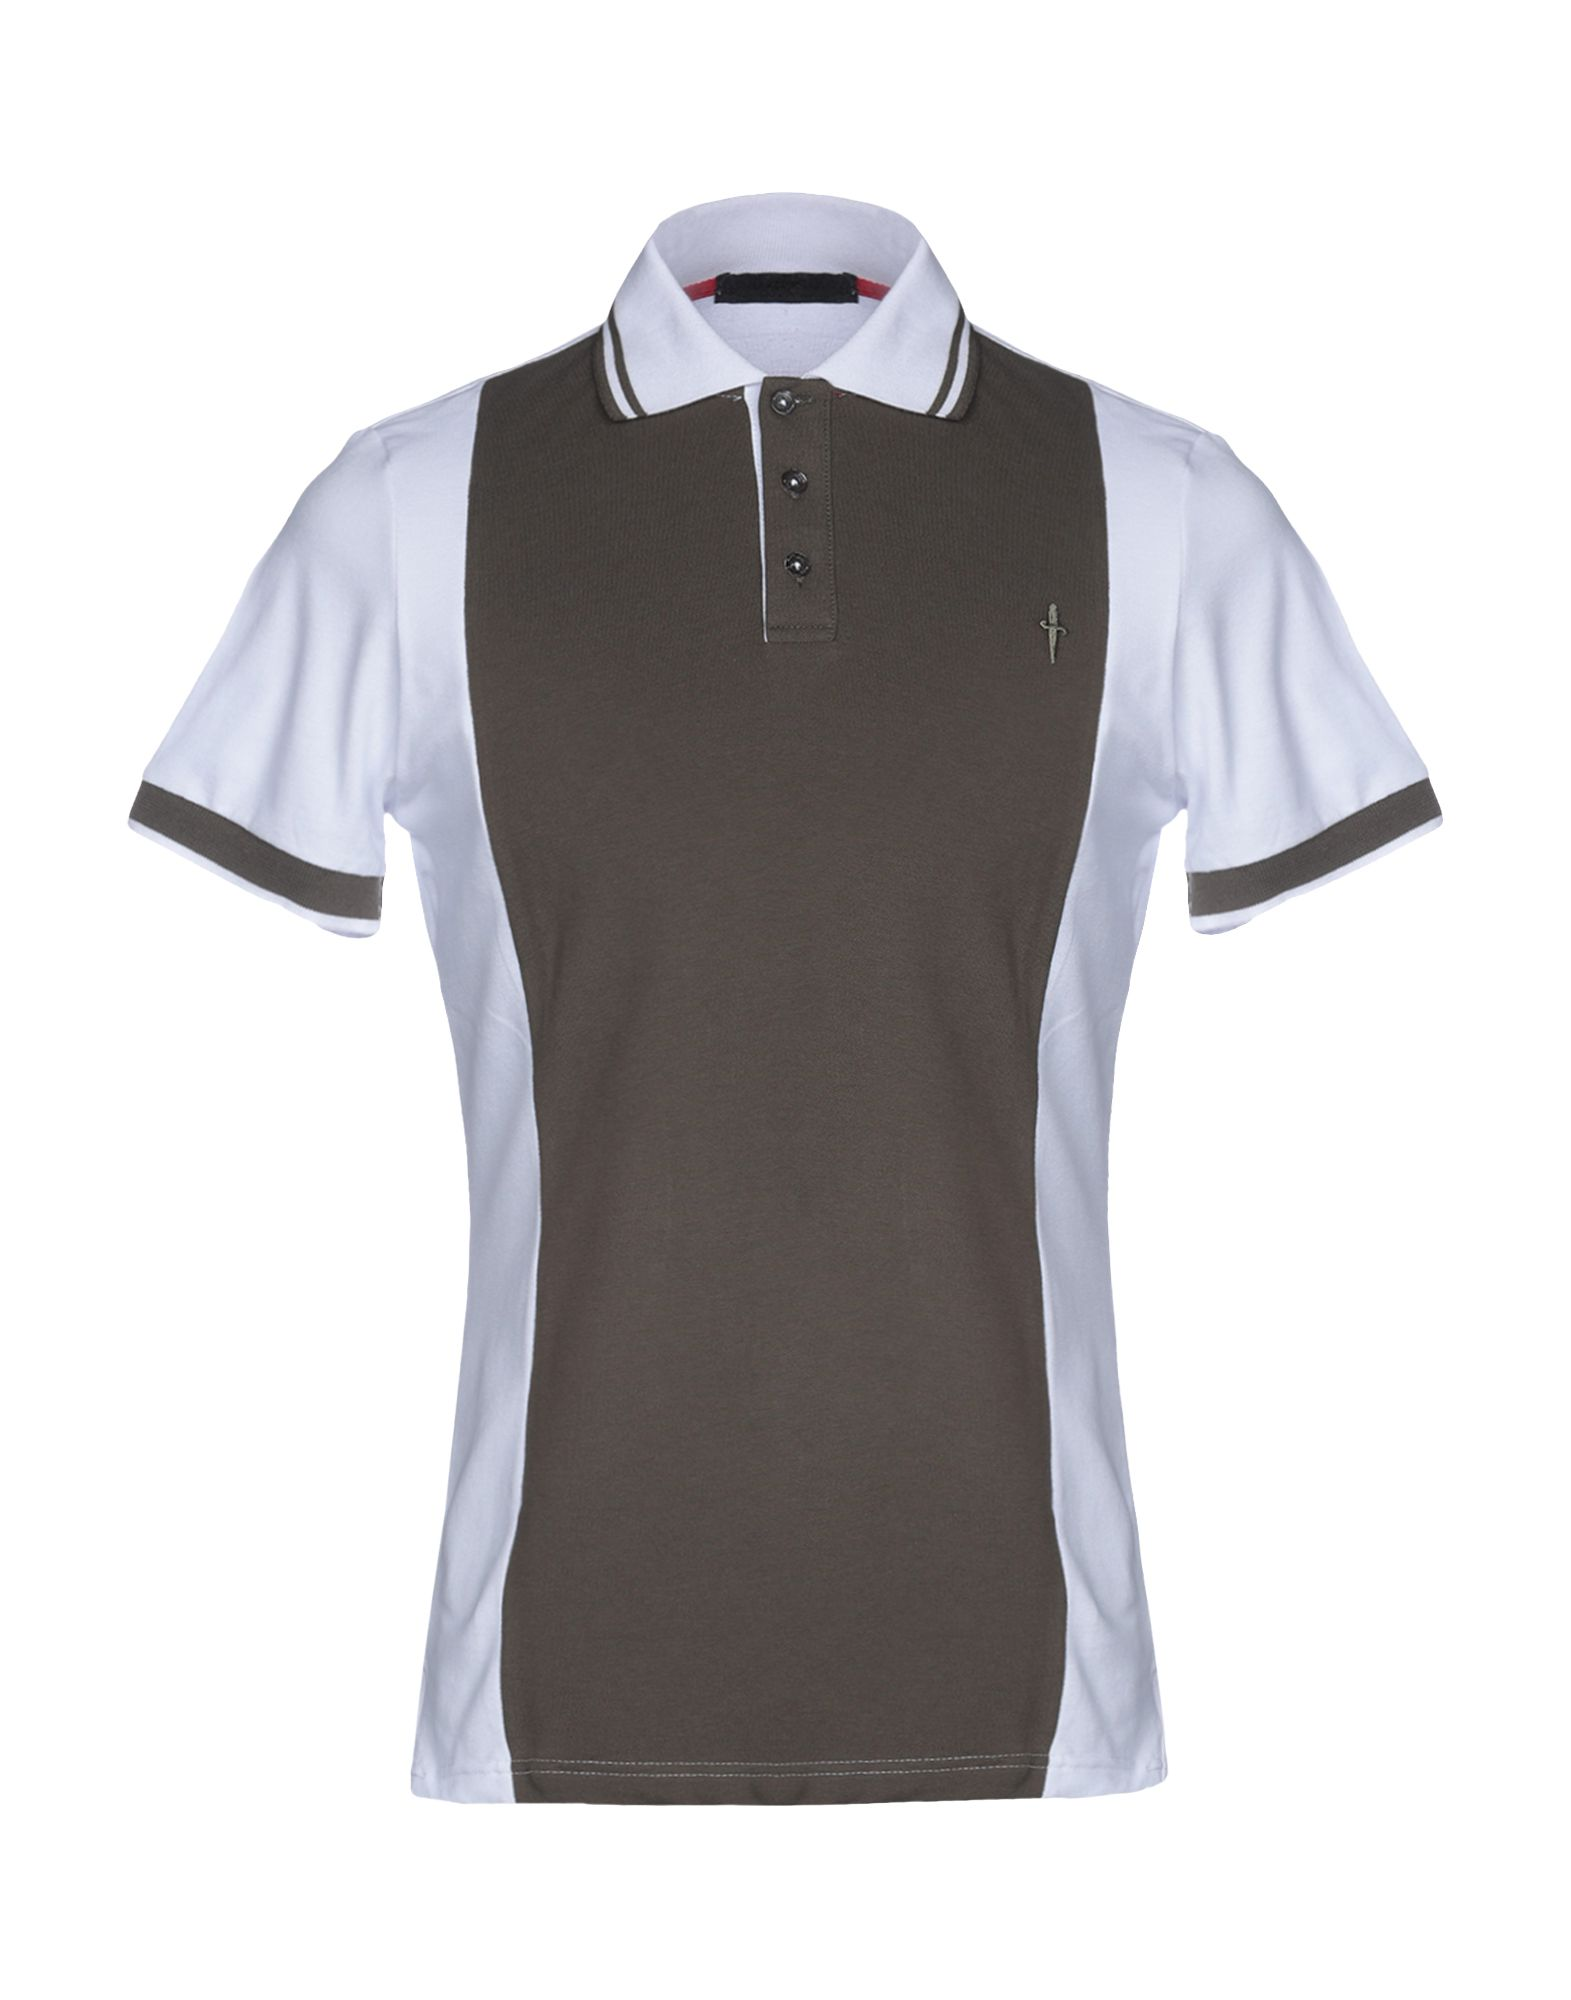 CESARE PACIOTTI 4US Polo Shirts in Military Green